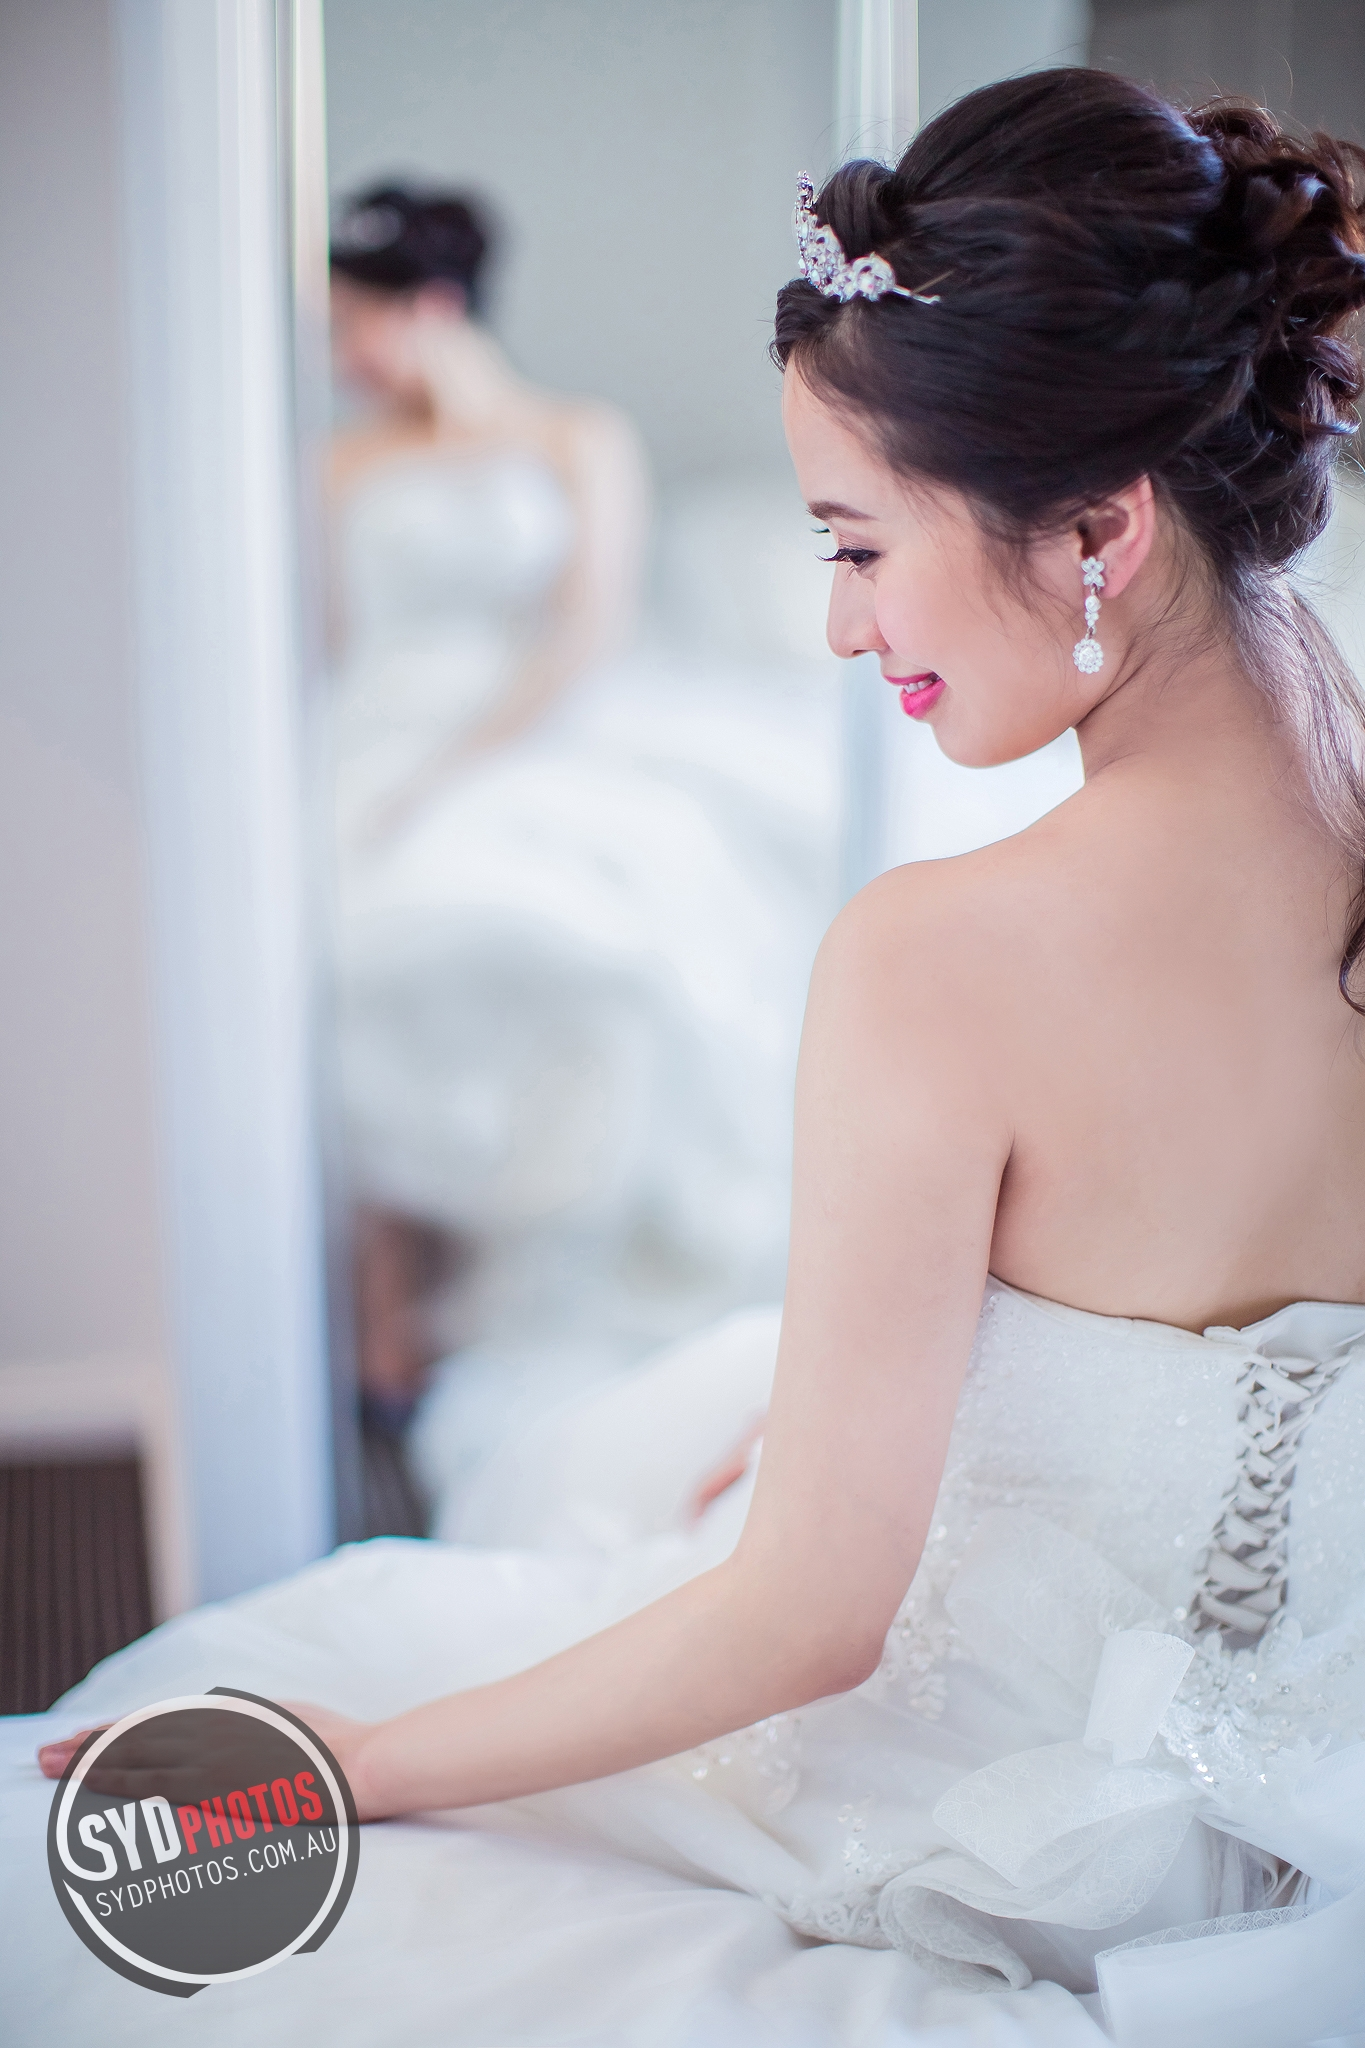 id-80174-20170903-267.jpg, By Photographer Sydphotos.wedding, Created on 11 Feb 2018, SYDPHOTOS Photography all rights reserved.